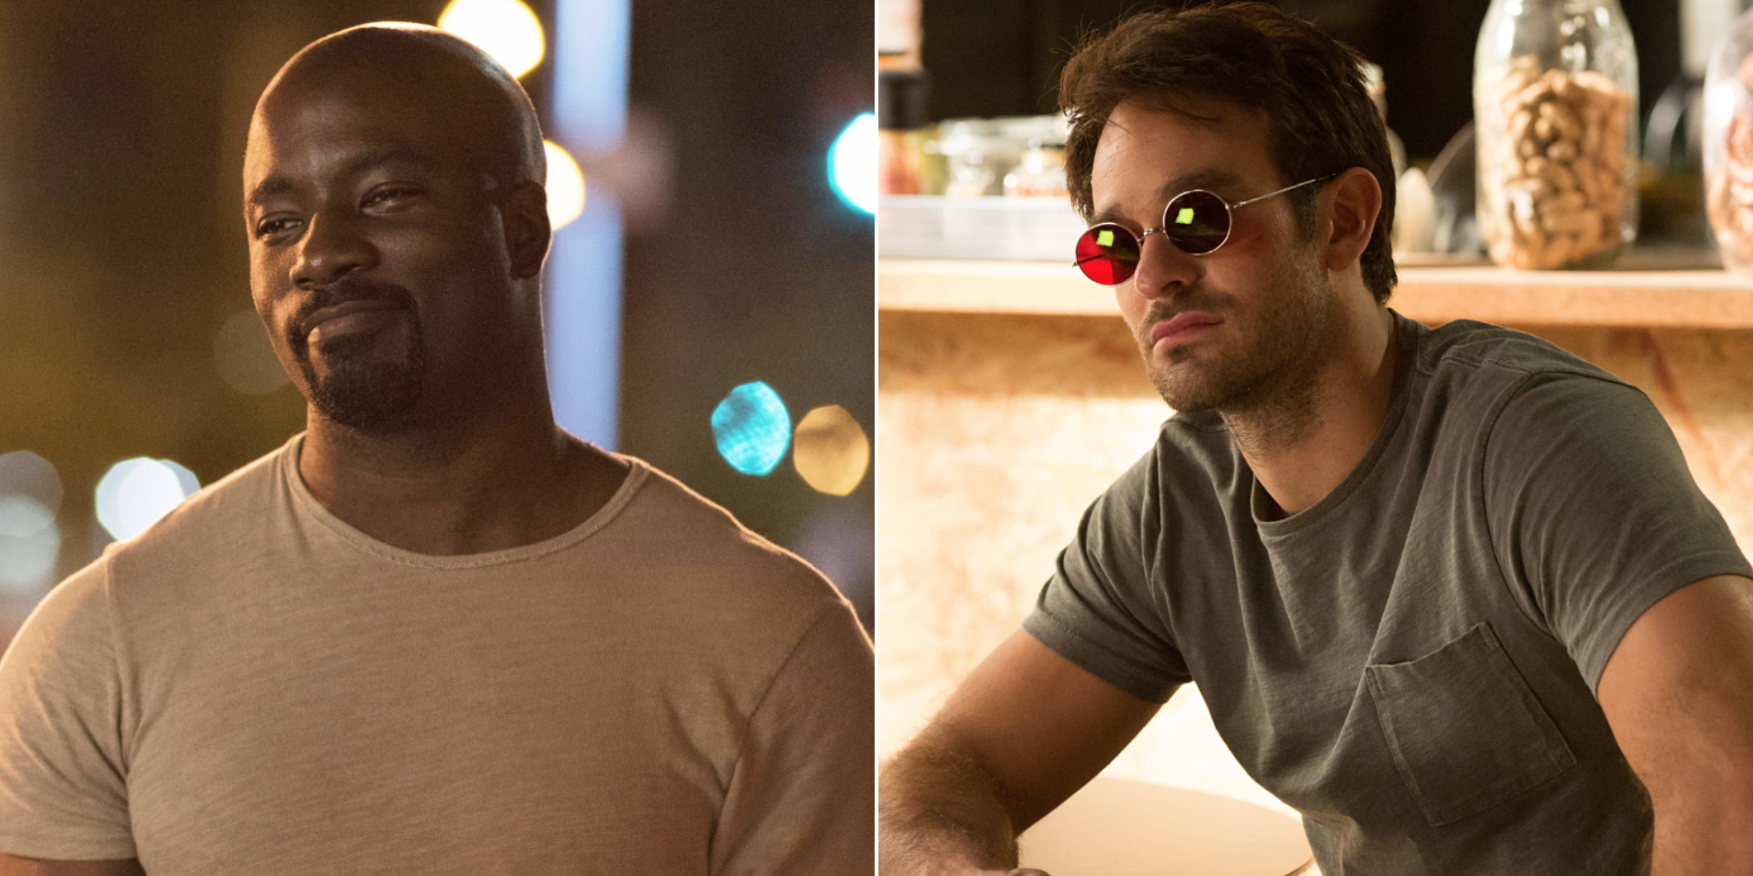 Luke Cage (Mike Colter) and Matt Murdock (Charlie Cox) in Marvel's Netflix shows